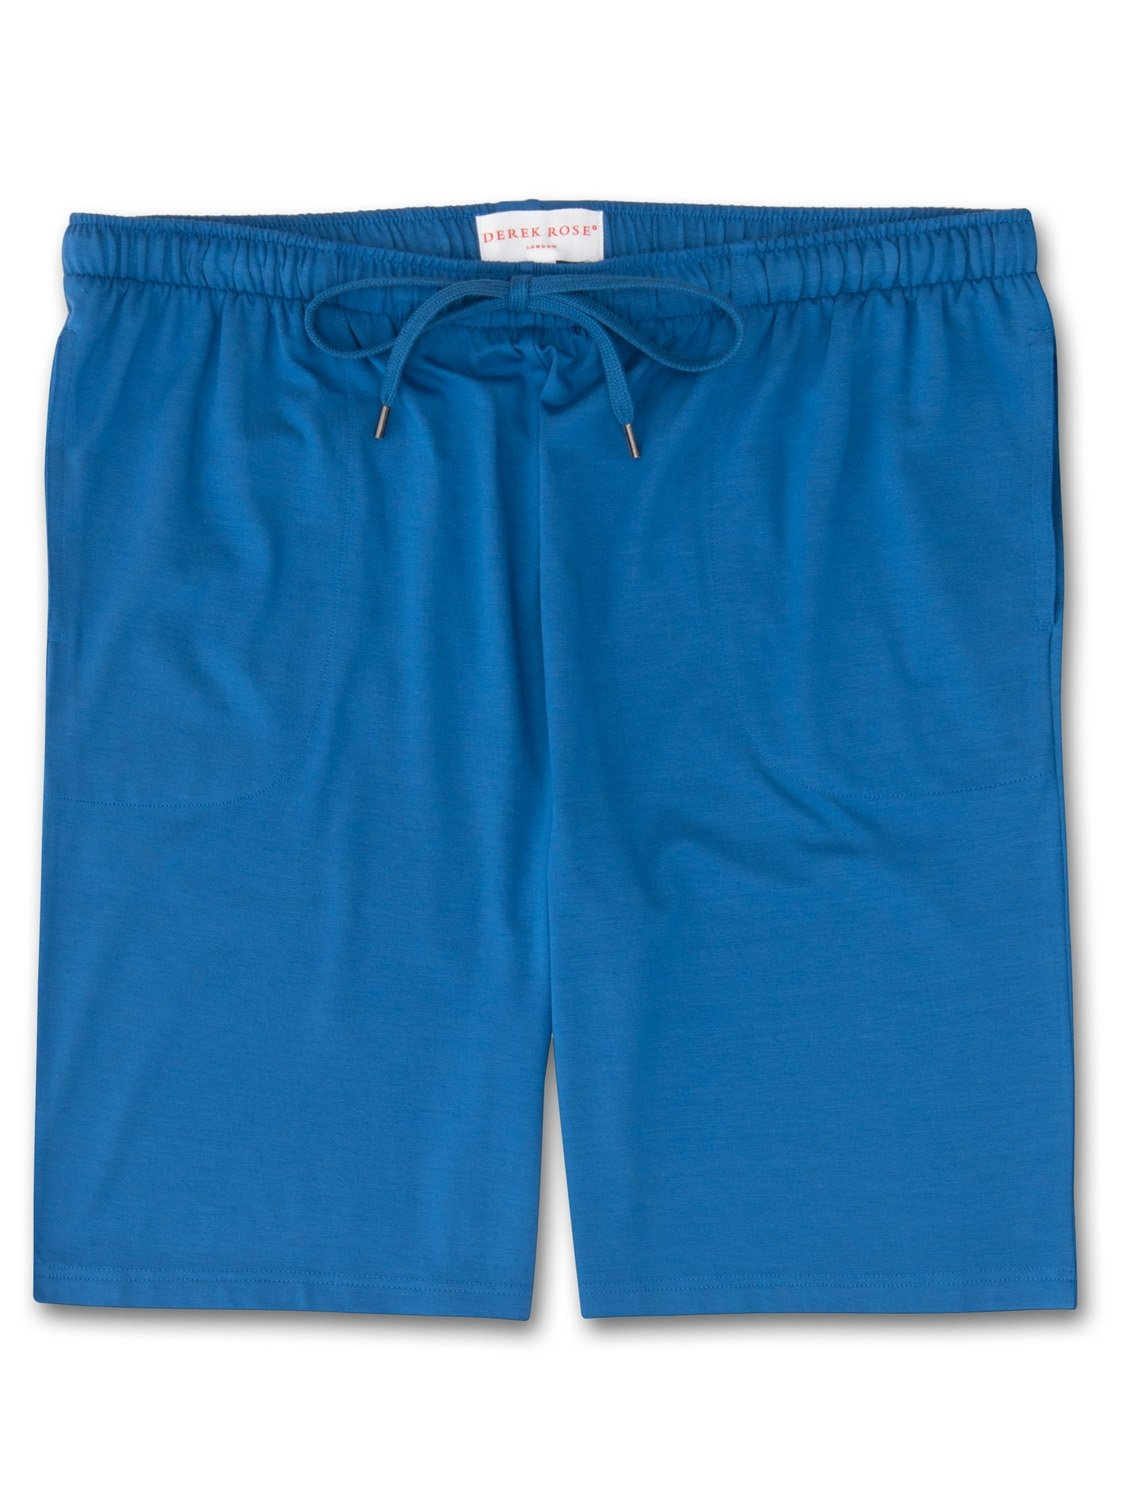 Men's Jersey Shorts Basel 5 Micro Modal Stretch Blue